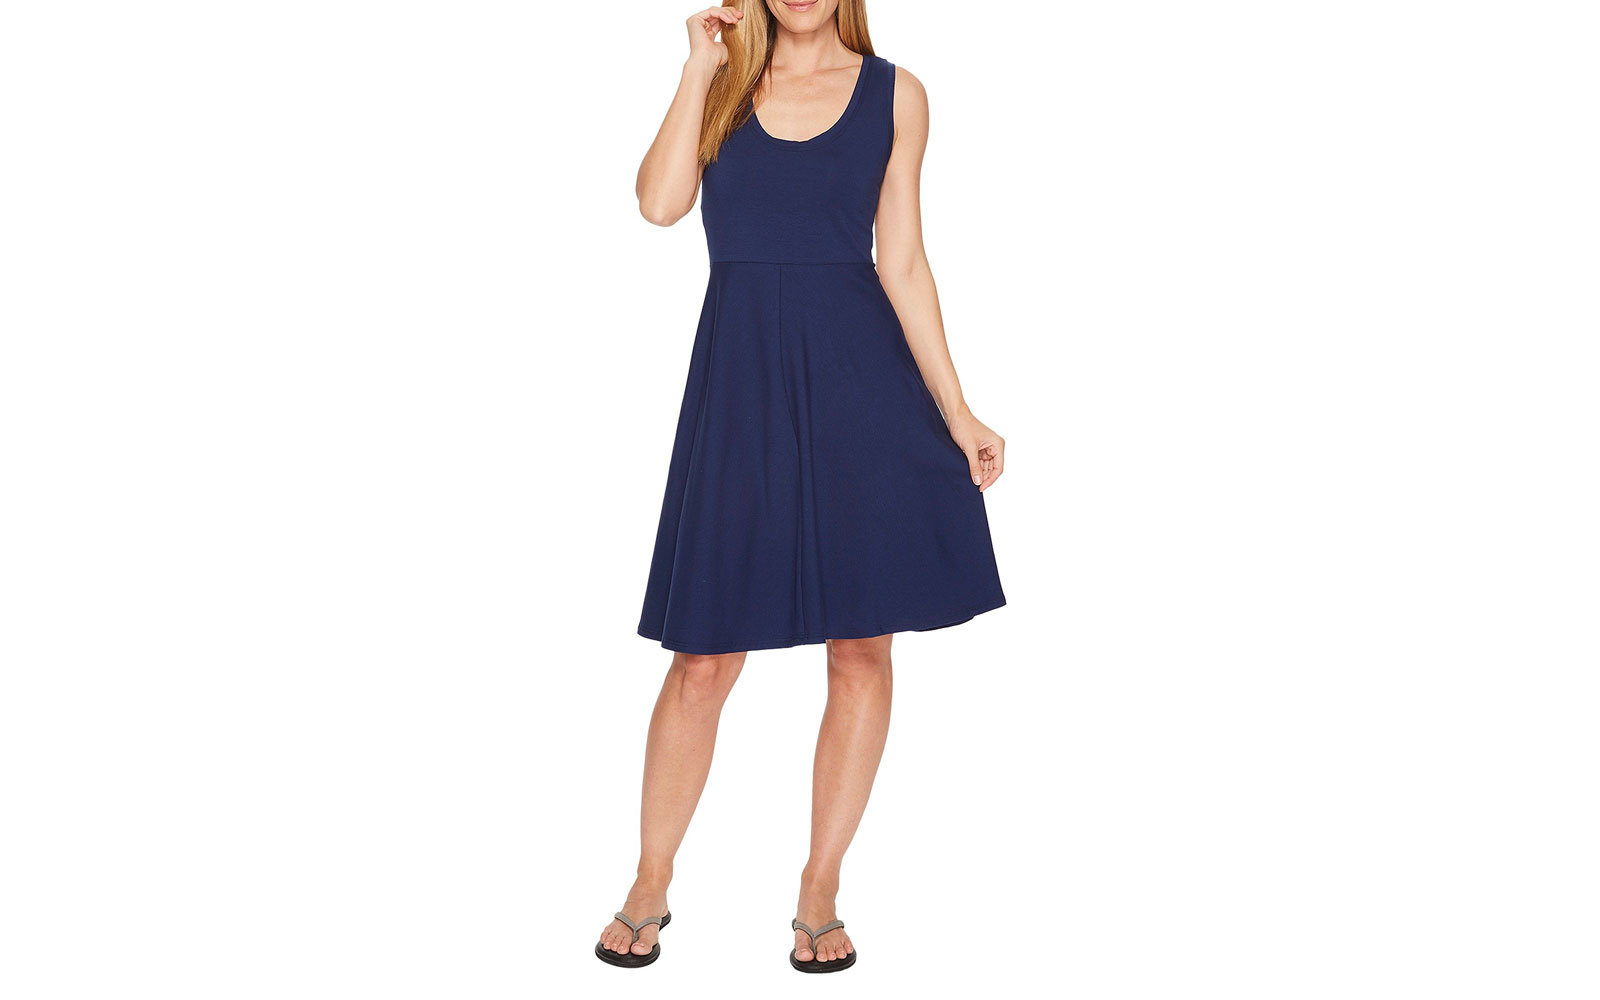 fd70c81aa2c8 11 Wrinkle-resistant Dresses for Travel